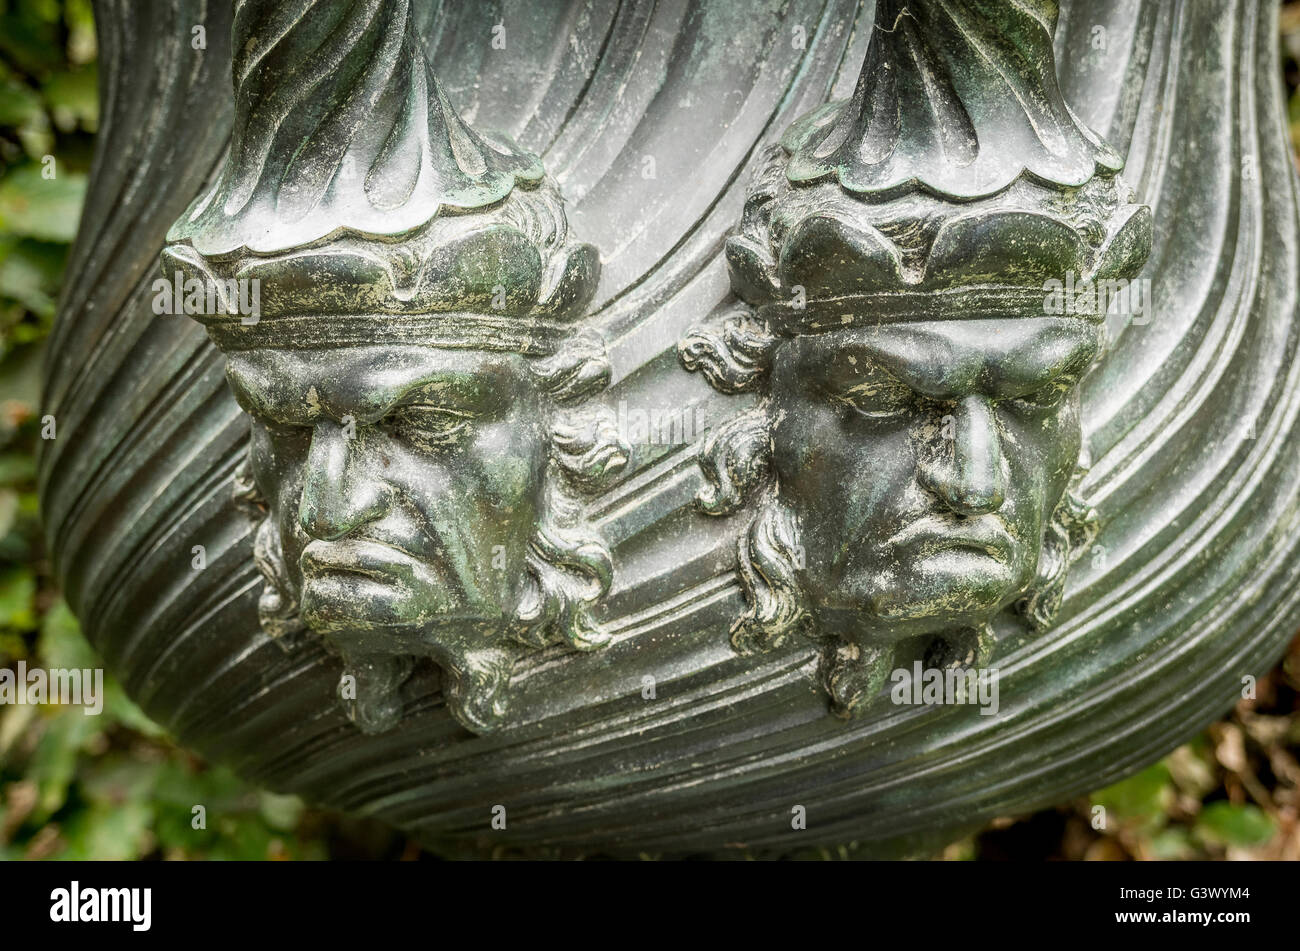 Two unhappy faces adorn an old urn in the garden of a stately home in UK - Stock Image